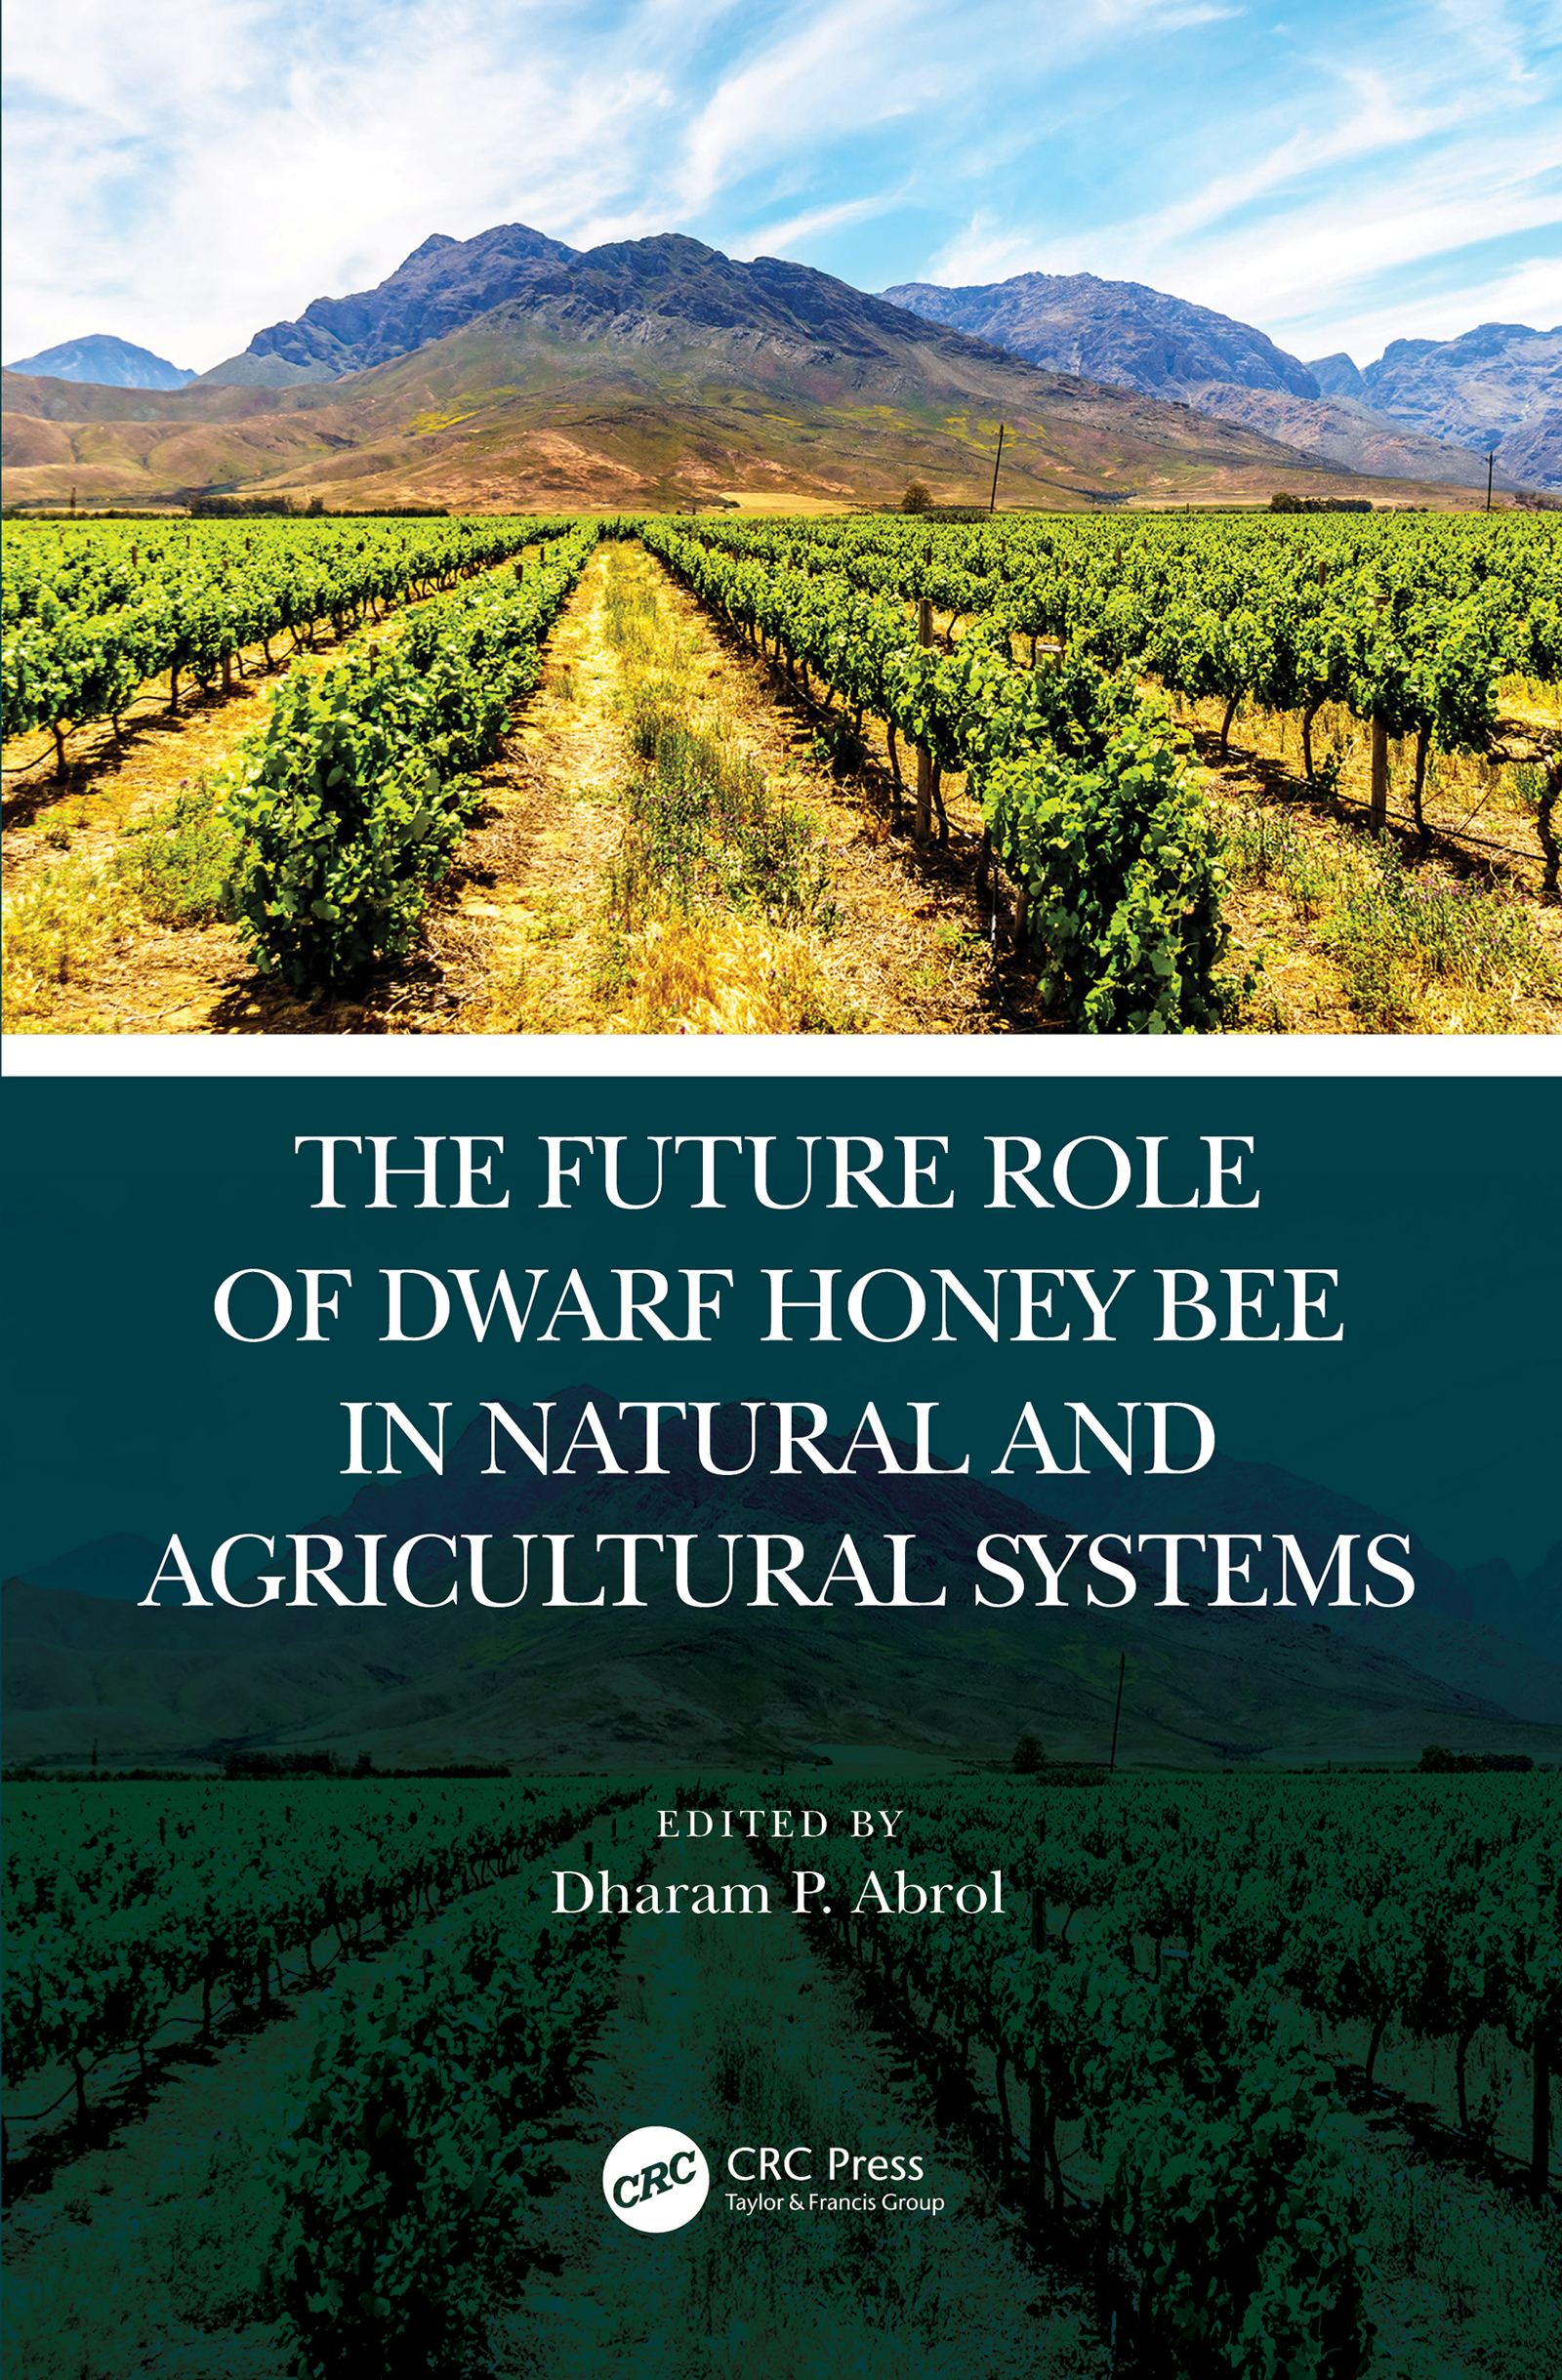 The Future Role of Dwarf Honey Bees in Natural and Agricultural Systems